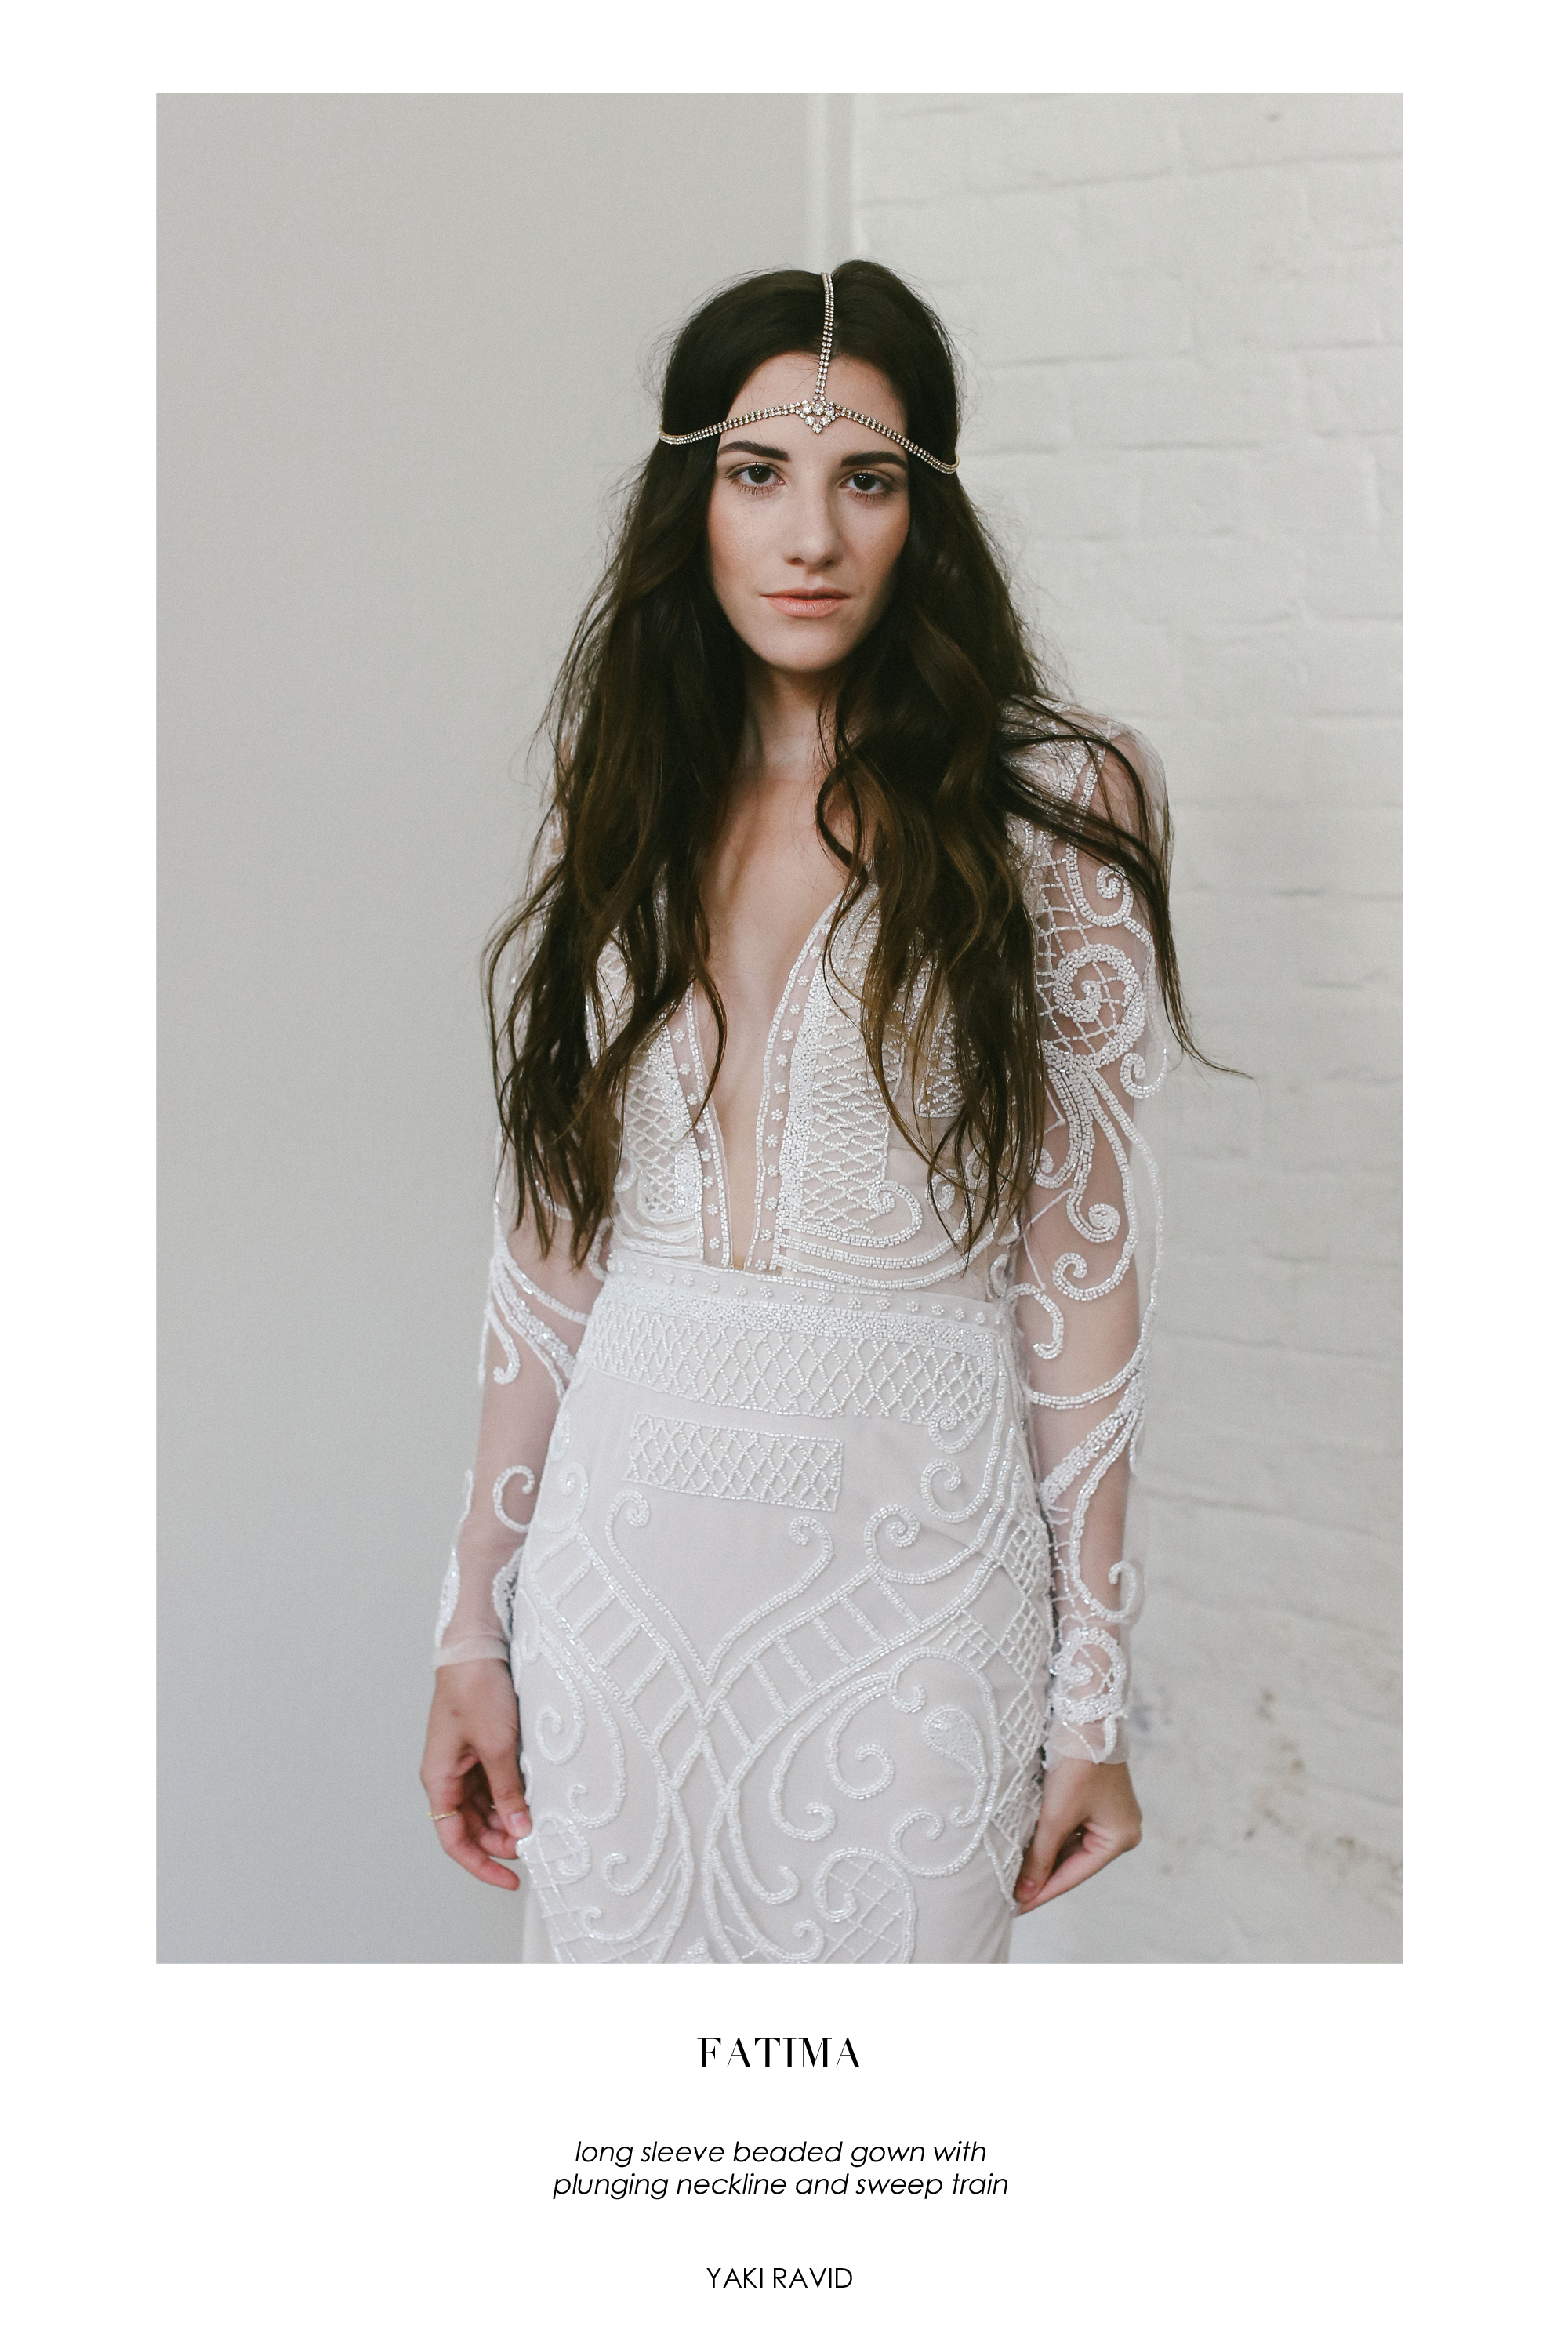 finery-boutique-huntsivlle-alabama-bohemian-wedding-shop-odylyne-the-ceremony-yolan-cris-bride-bridal-yaki-ravid-berta-calla-blanche-lookbook-cool-nashville-tenessee-alyssa-jennifer-behr